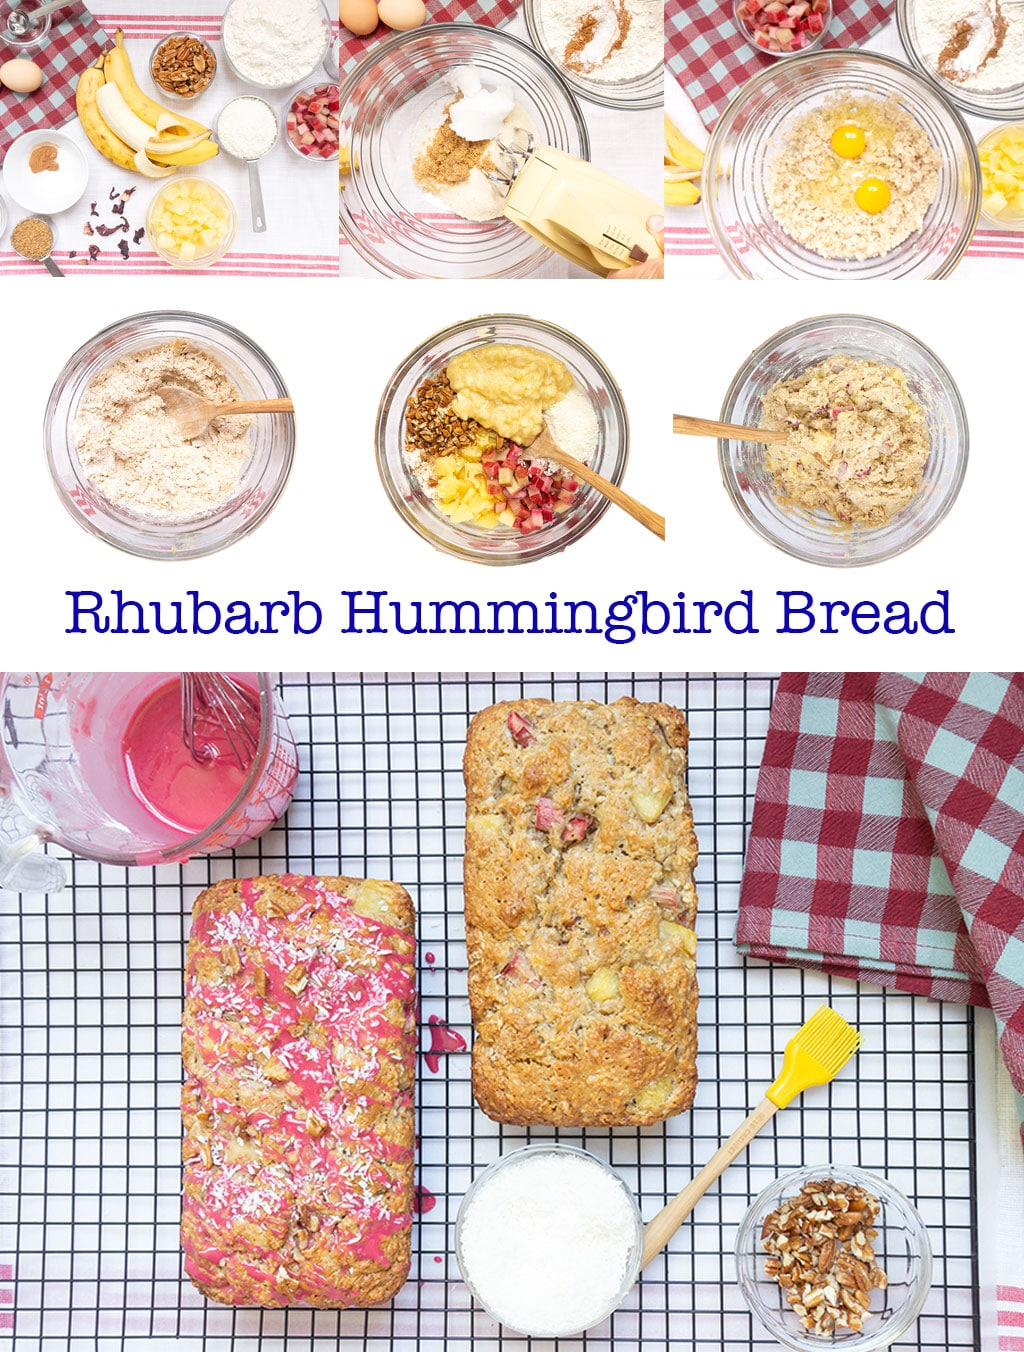 Step by Step Instructions on making Rhubarb Hummingbird Bread